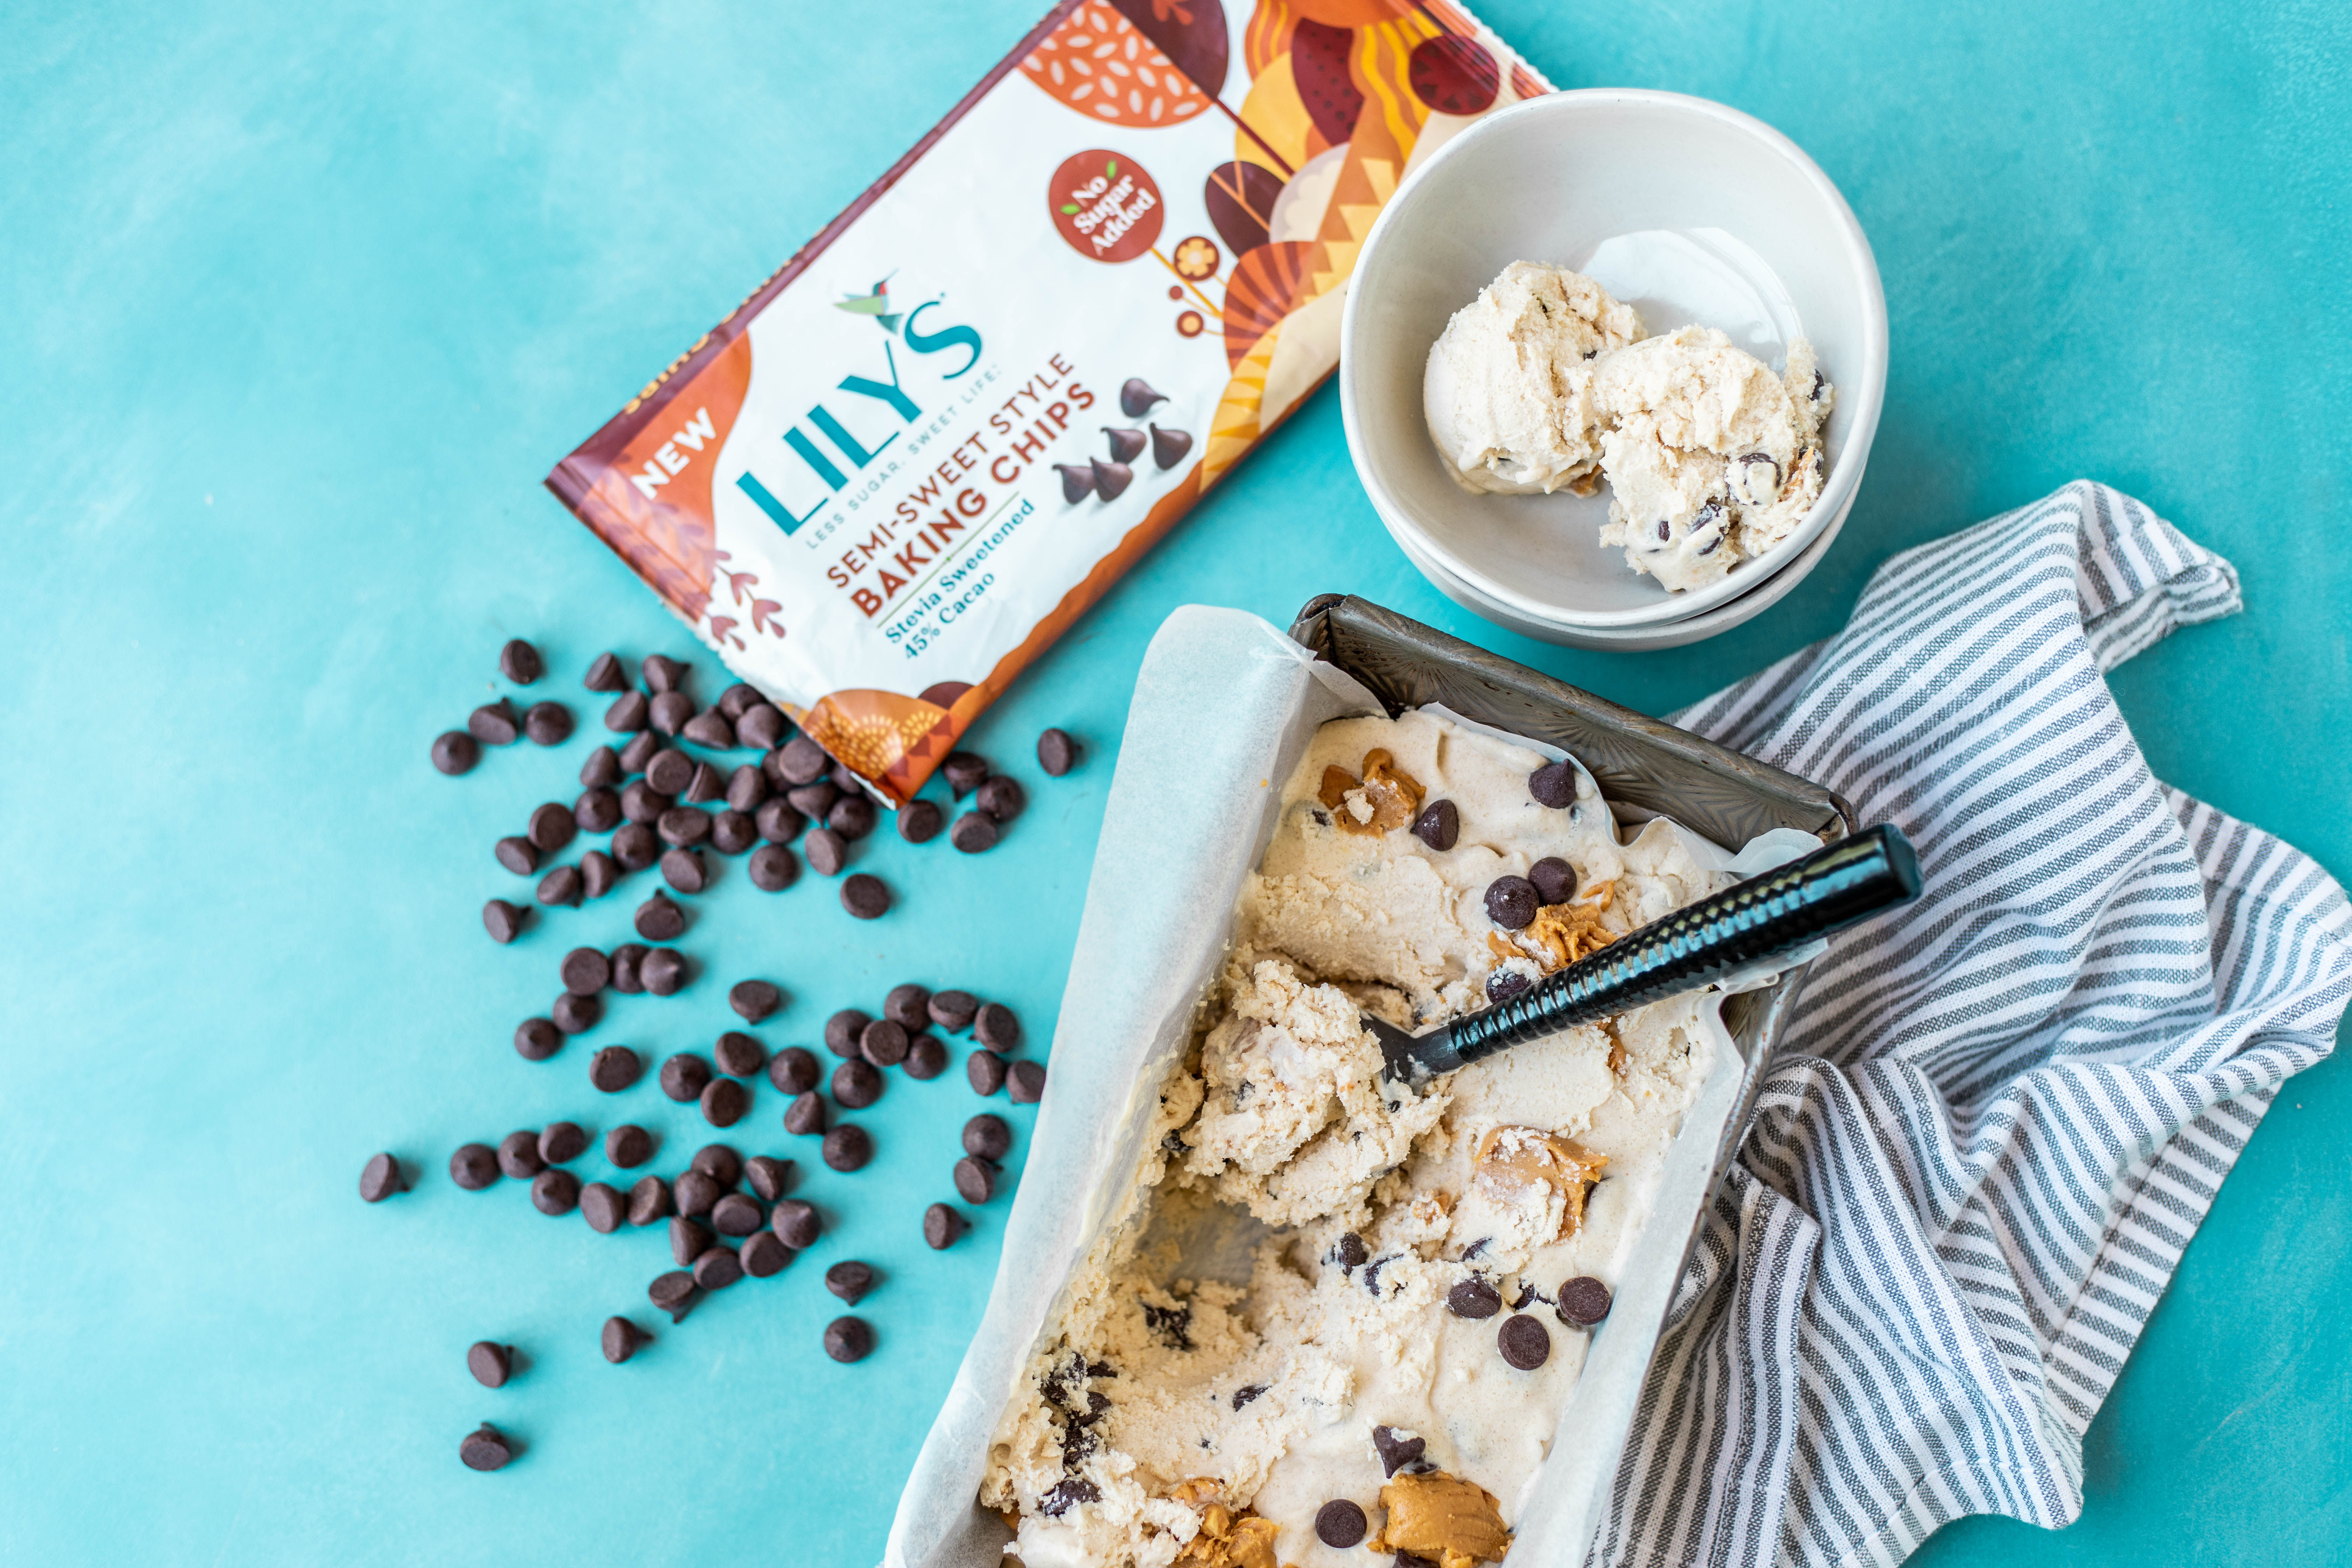 Low Carb Peanut Butter Chocolate Chip Ice-cream